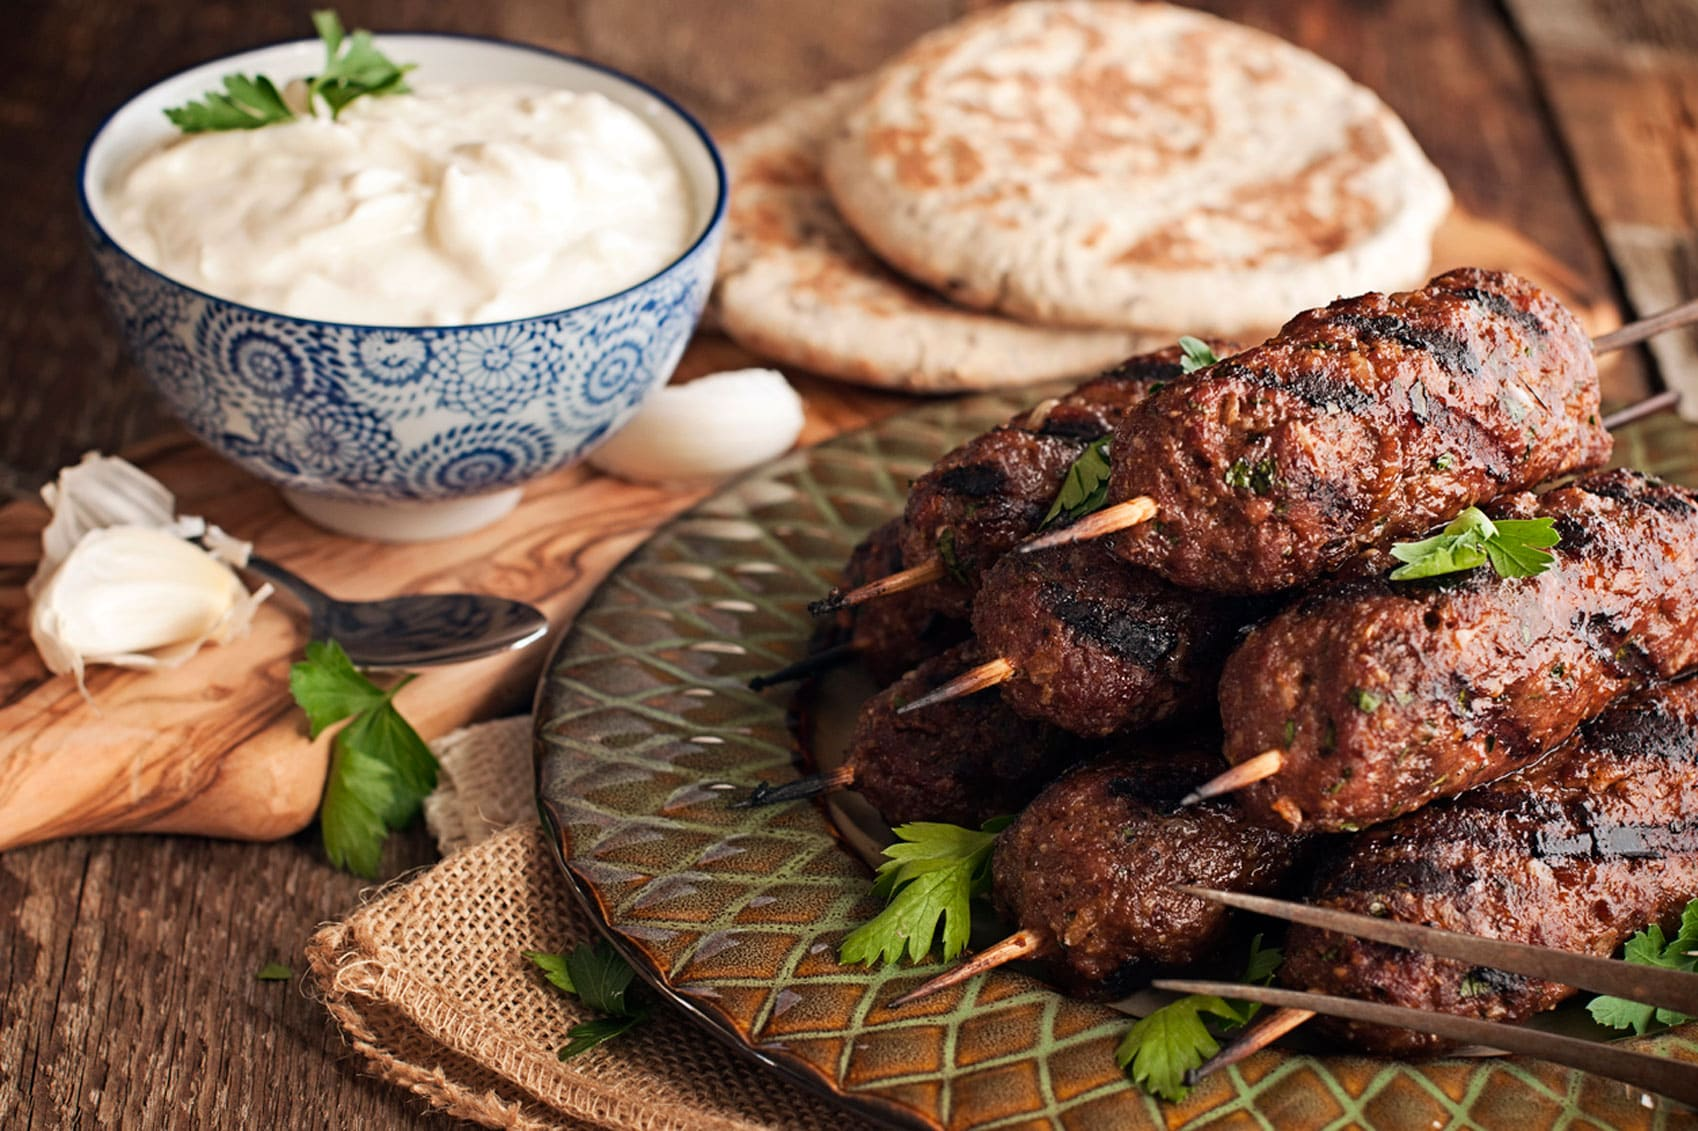 Dishes from around the world Middle-East-Lamb-Kebabs-www.istockphoto.comgbphotokofte-kofta-middle-east-lamb-kababs-gm181064432-25269442-jjpoole